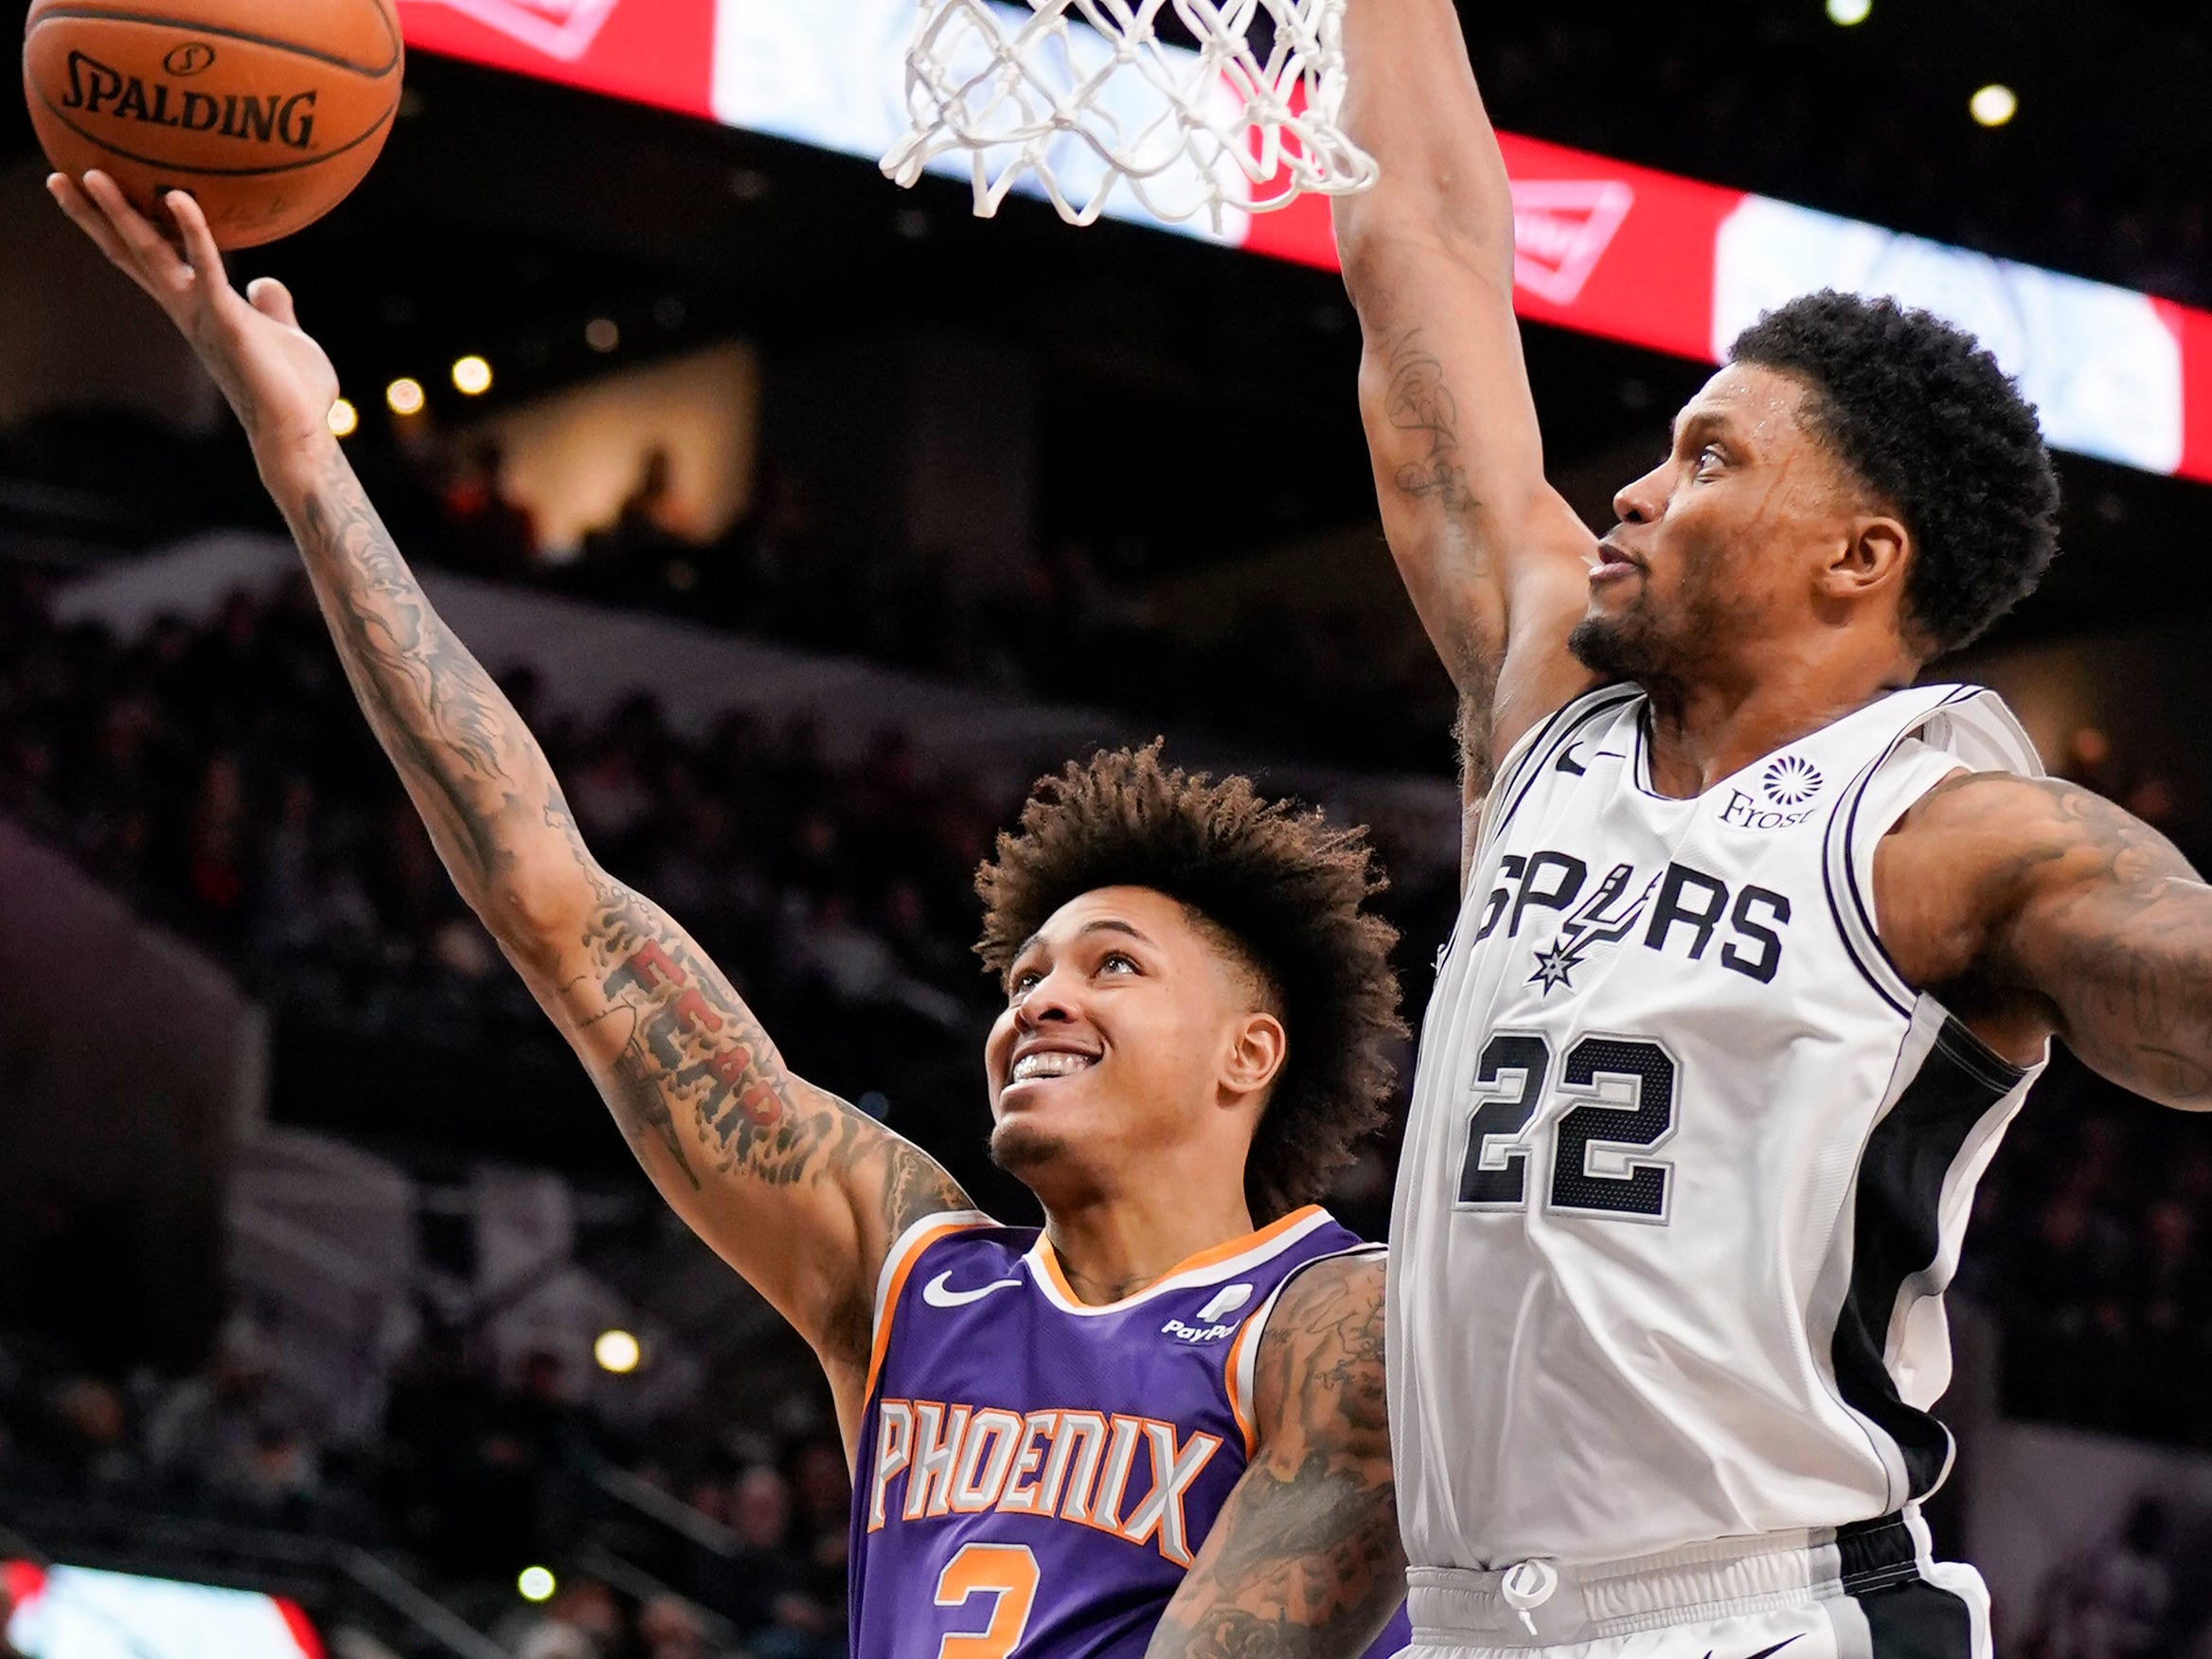 Phoenix Suns' Kelly Oubre, Jr. (3) shoots against San Antonio Spurs' Rudy Gay during the first half of an NBA basketball game, Tuesday, Jan. 29, 2019, in San Antonio. (AP Photo/Darren Abate)